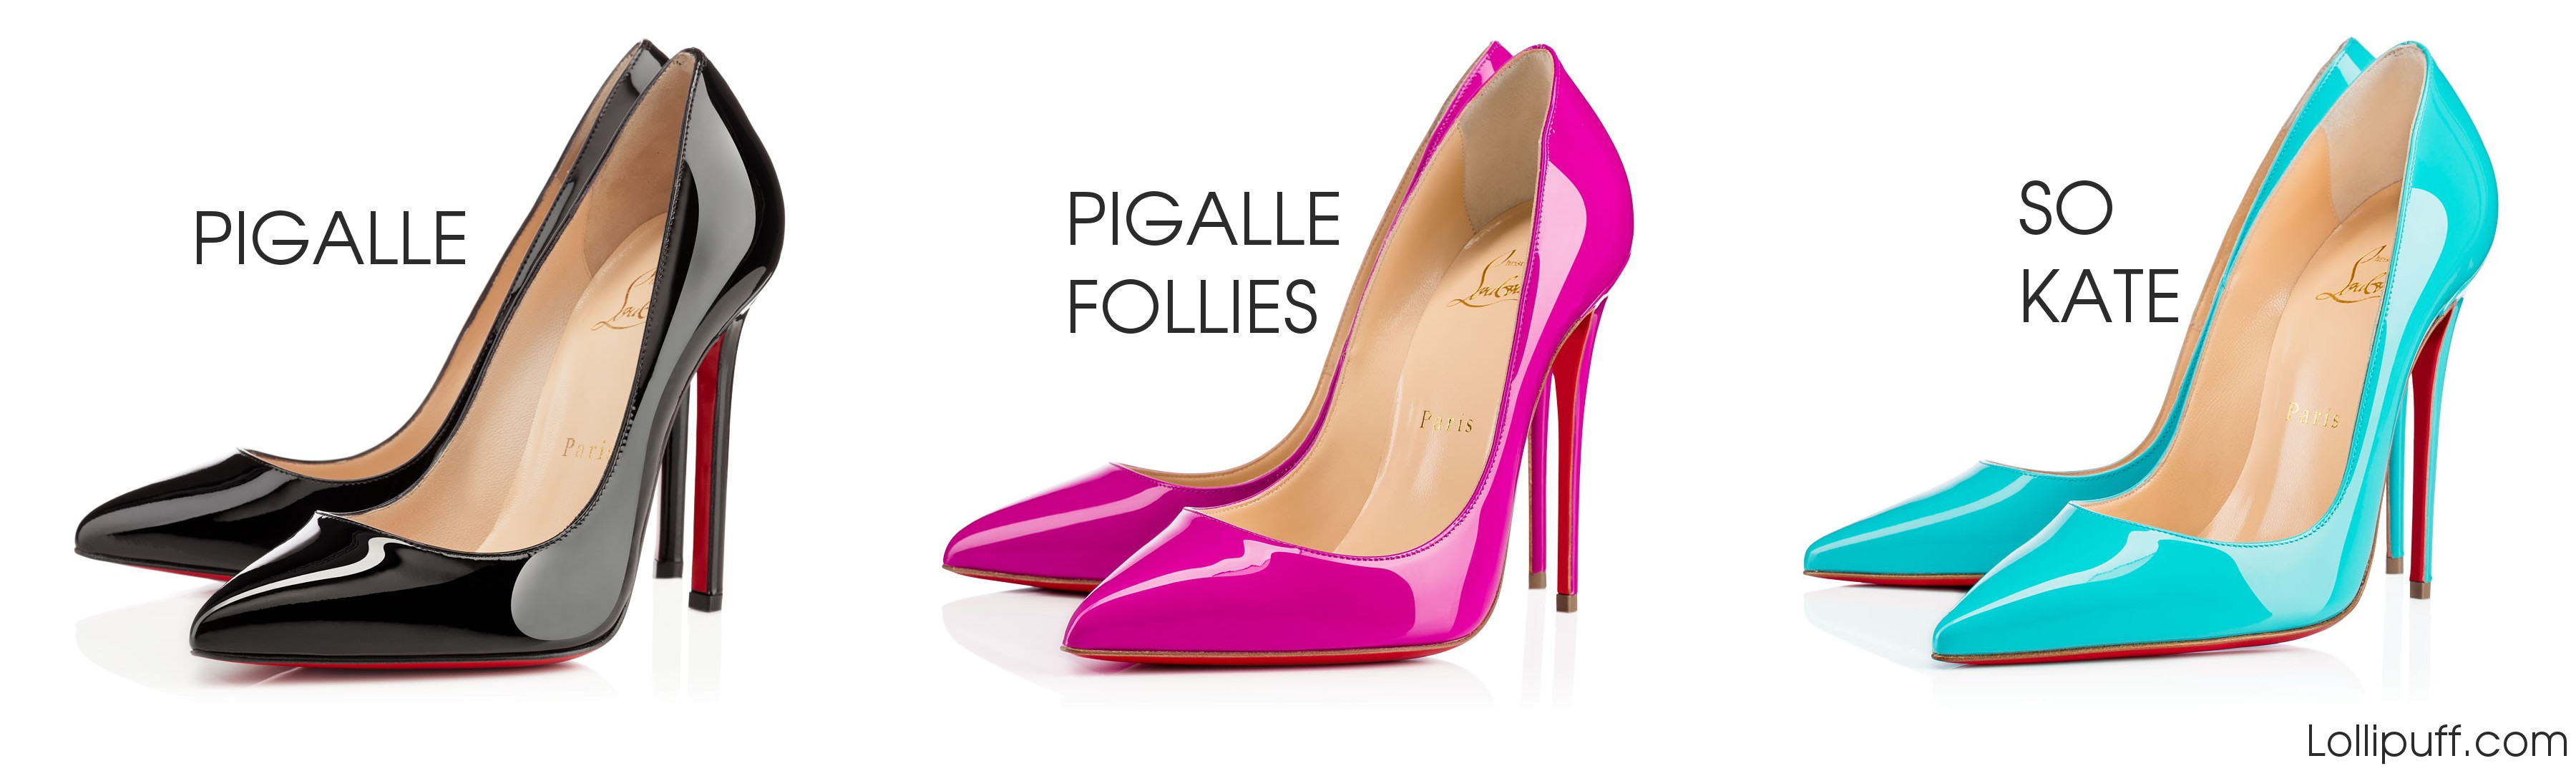 9584c3144f12 Christian Louboutin pointed toe pumps pigalle follies so kate comparison